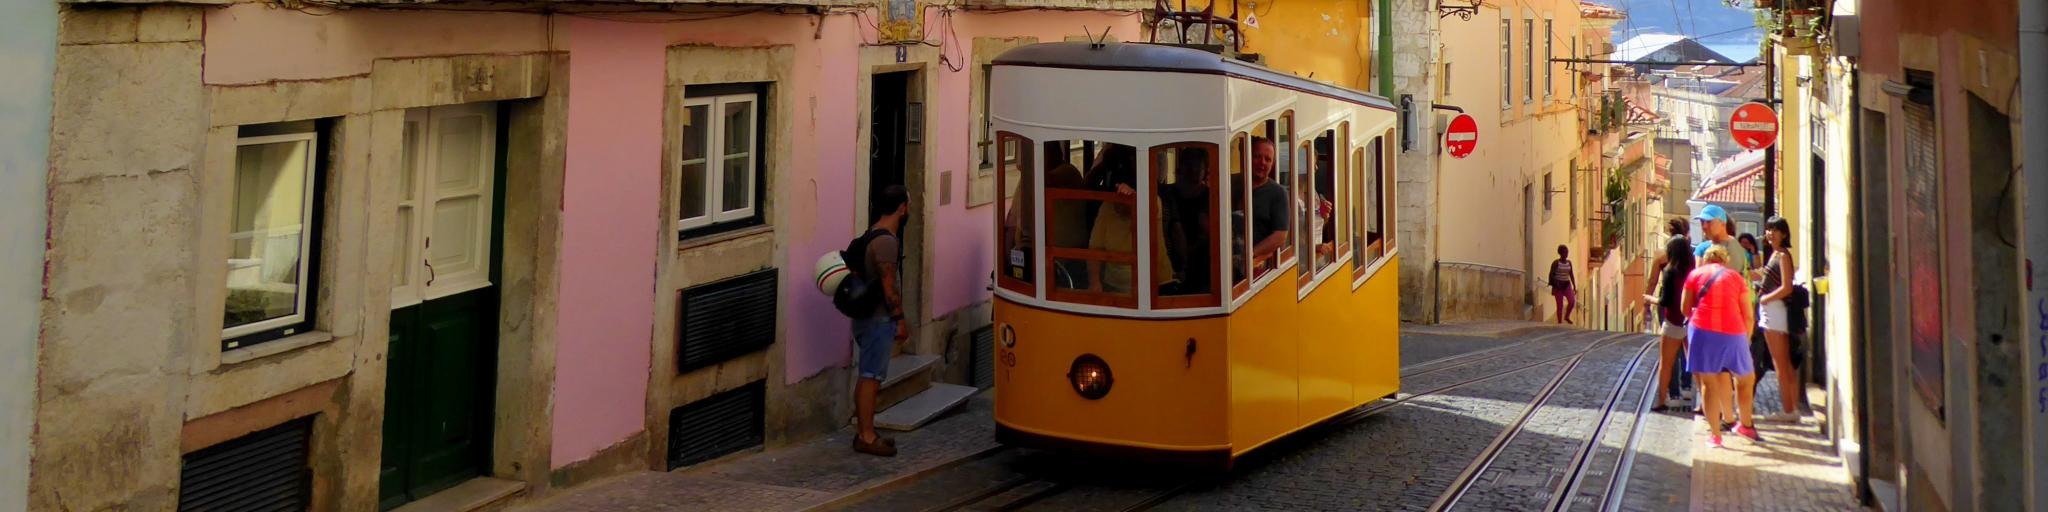 A classic yellow tram drives uphill on the streets of Lisbon, Portugal